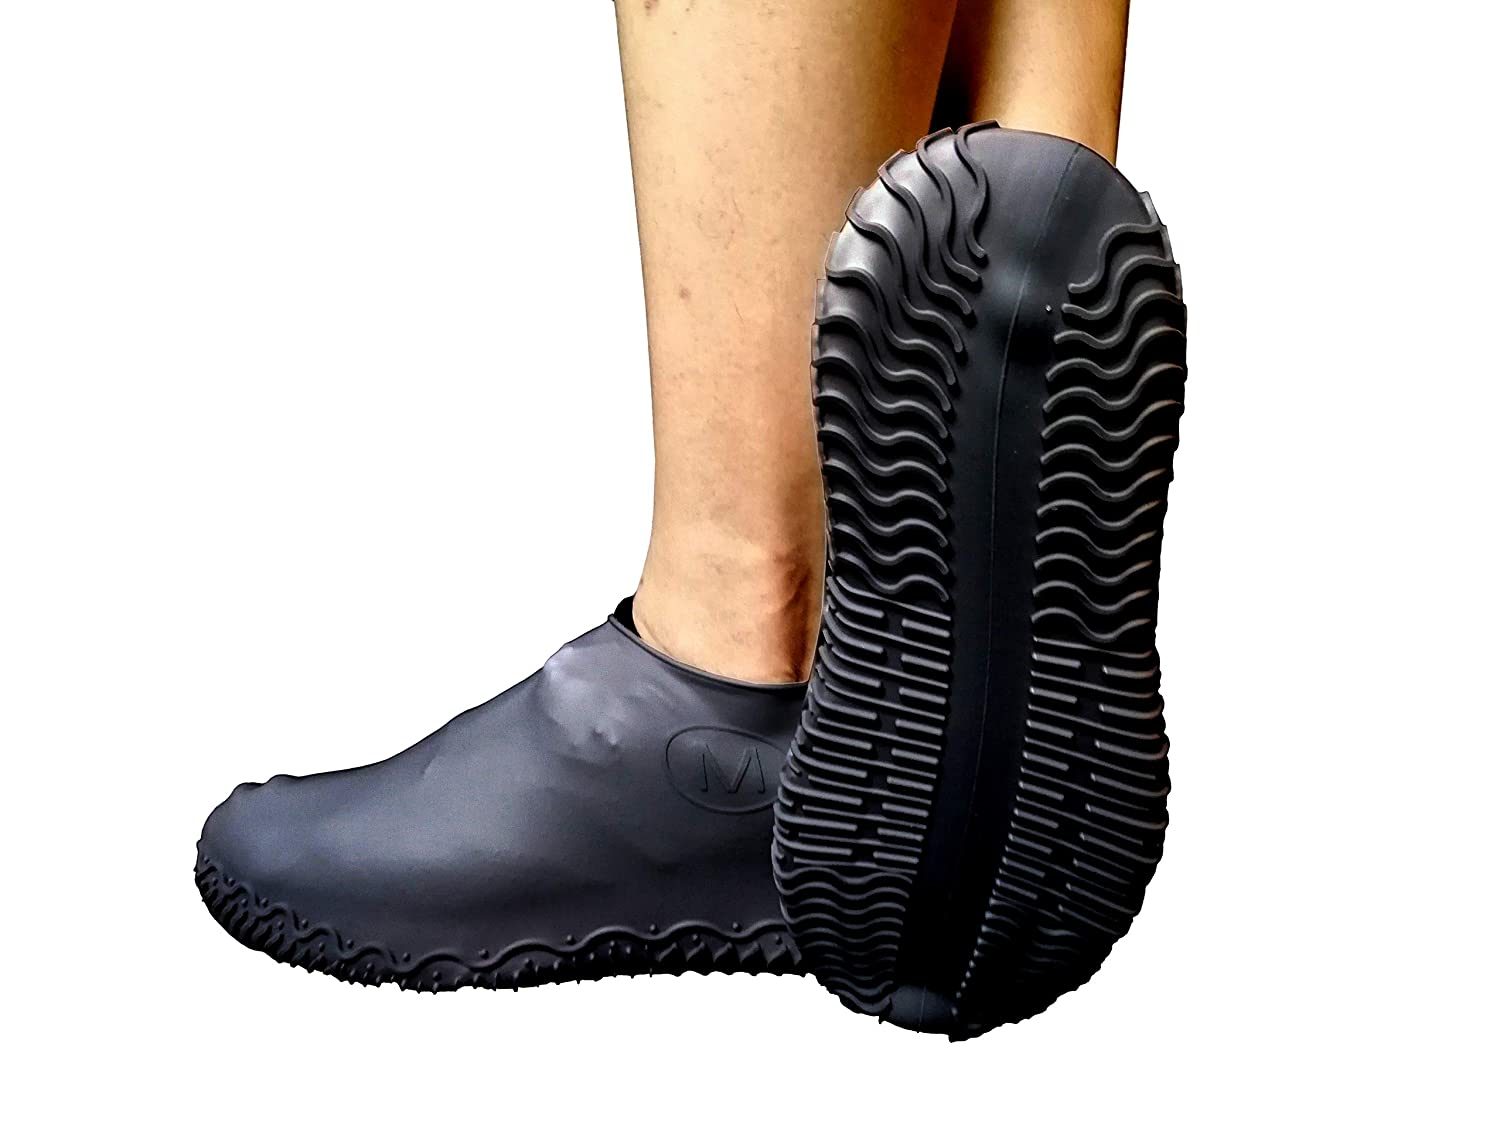 Waterproof Shoe Cover | Reusable Silicone Boot Shoe Covers | Silicone Rubber Shoe Protectors for Indoor and Outdoor Protection |Made of Heavy Duty Silicone|Men Women Kids |1 Pair(Medium,Clear white